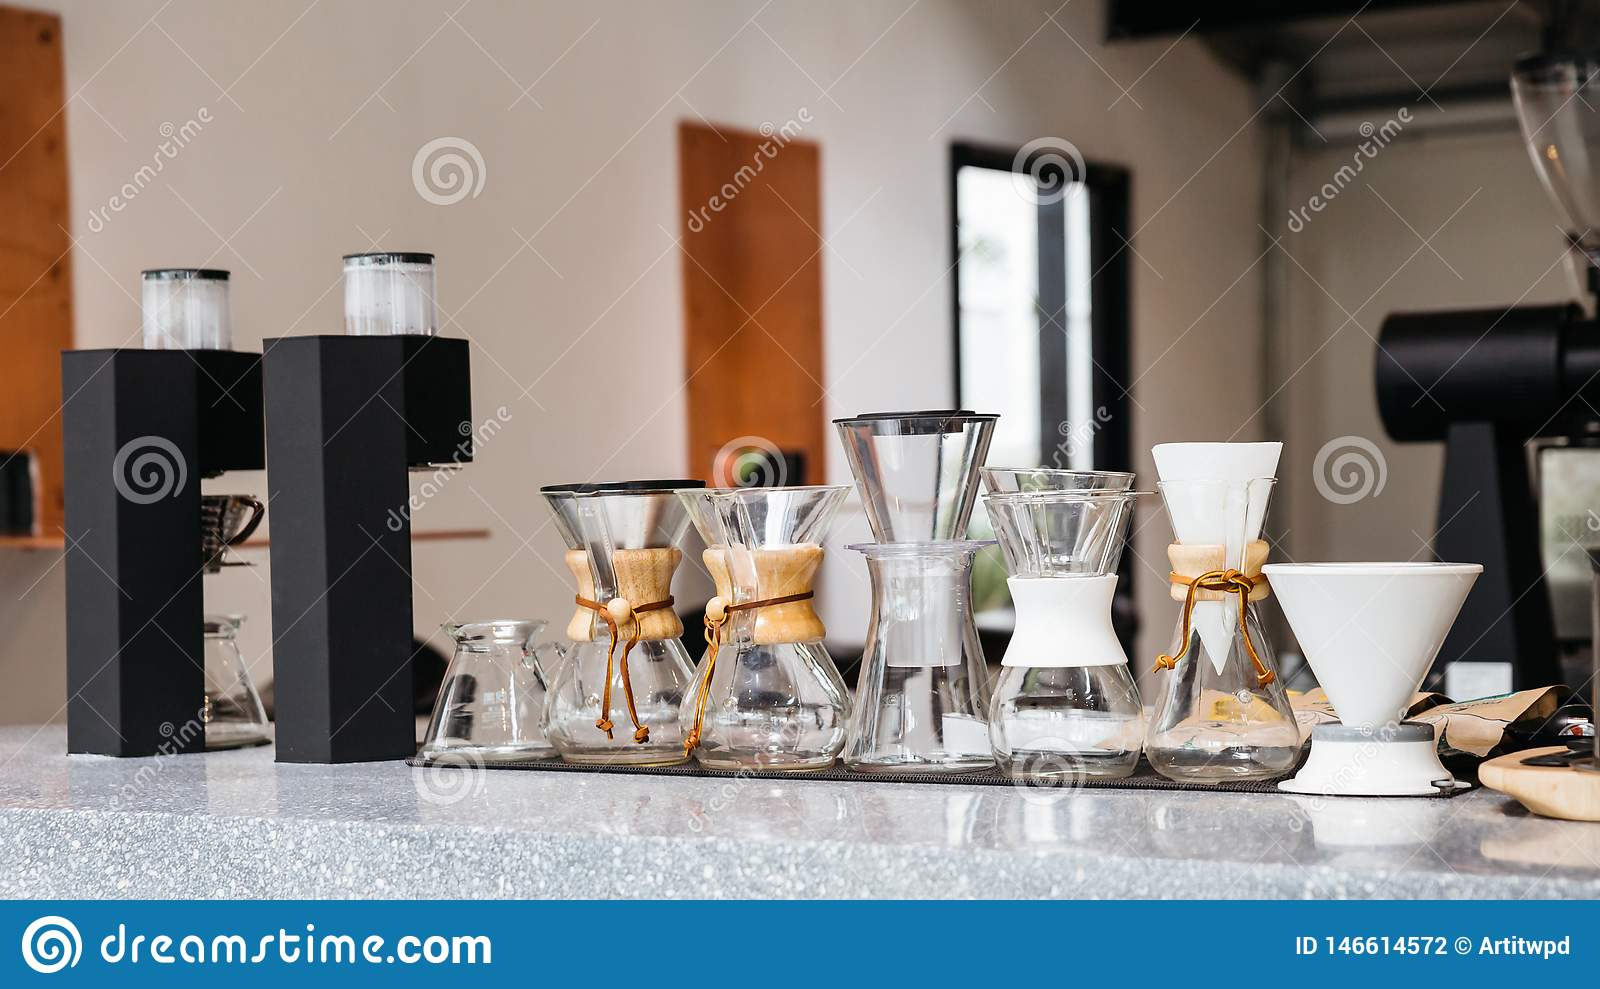 Coffee equipments with various sizes of drip coffee cups, drip paper and Espresso machine on marble top counter